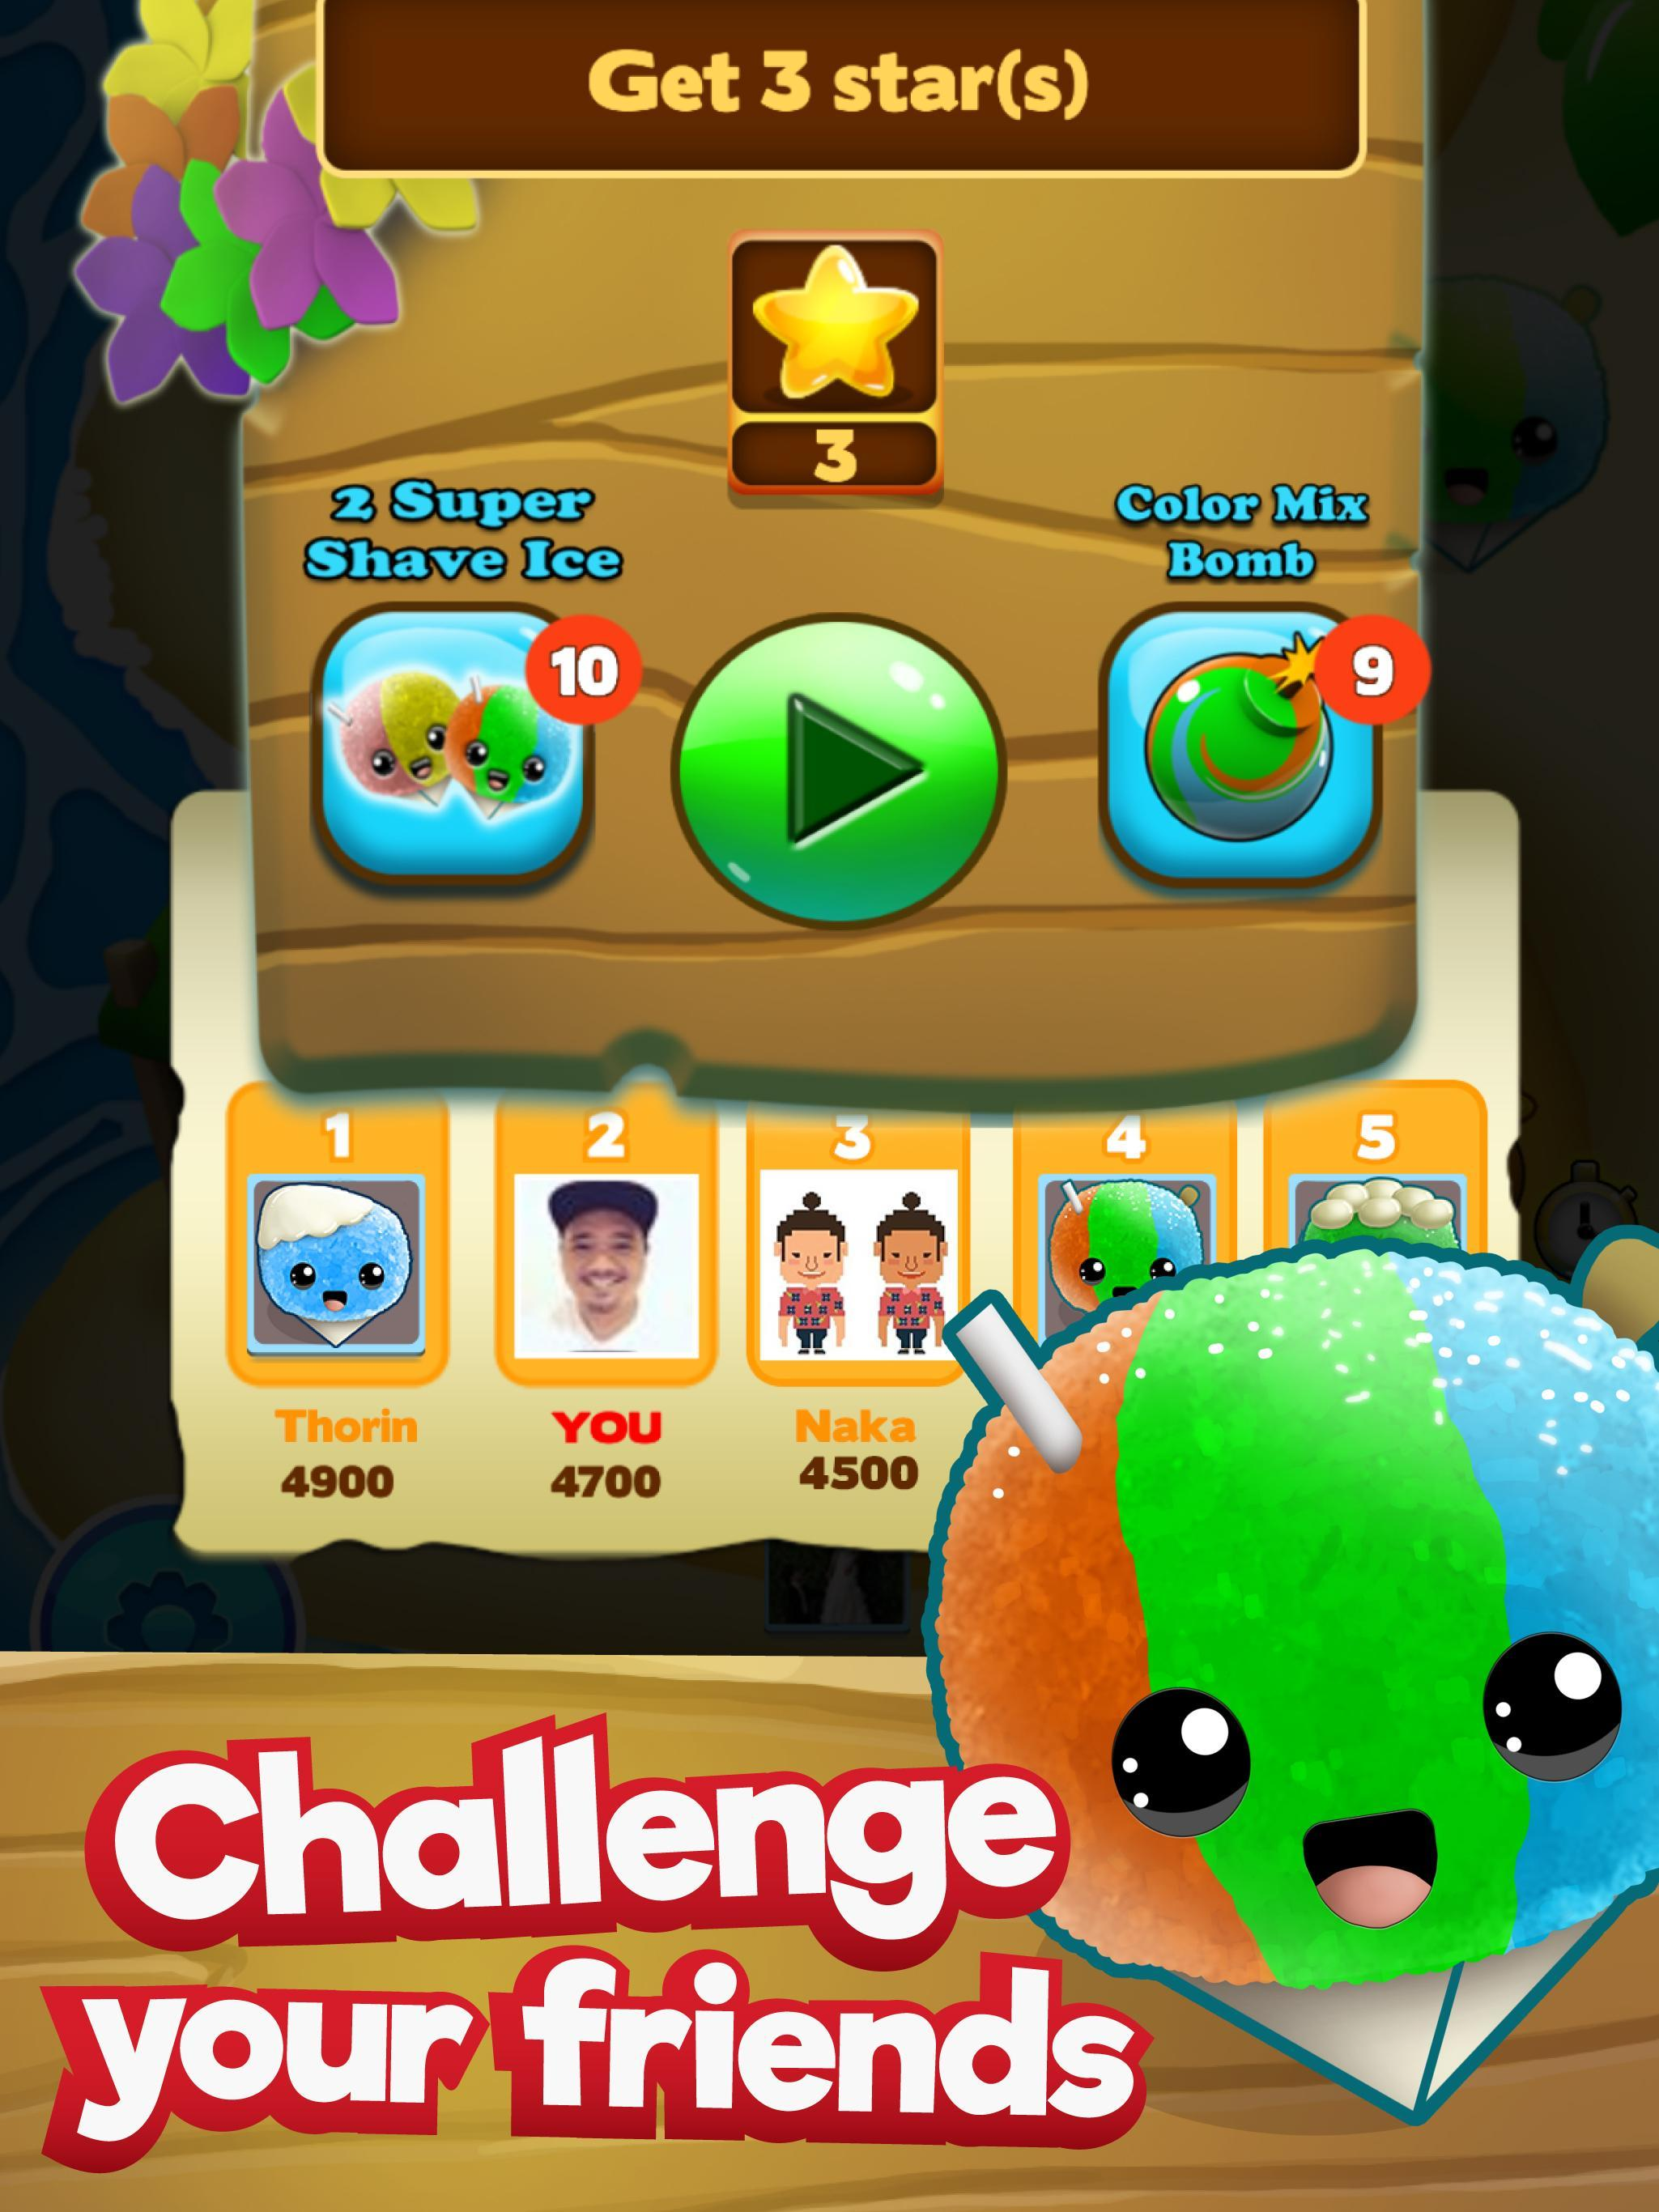 Aloha Shaved Ice - Hawaii Snow Cone Match 3 Game for Android